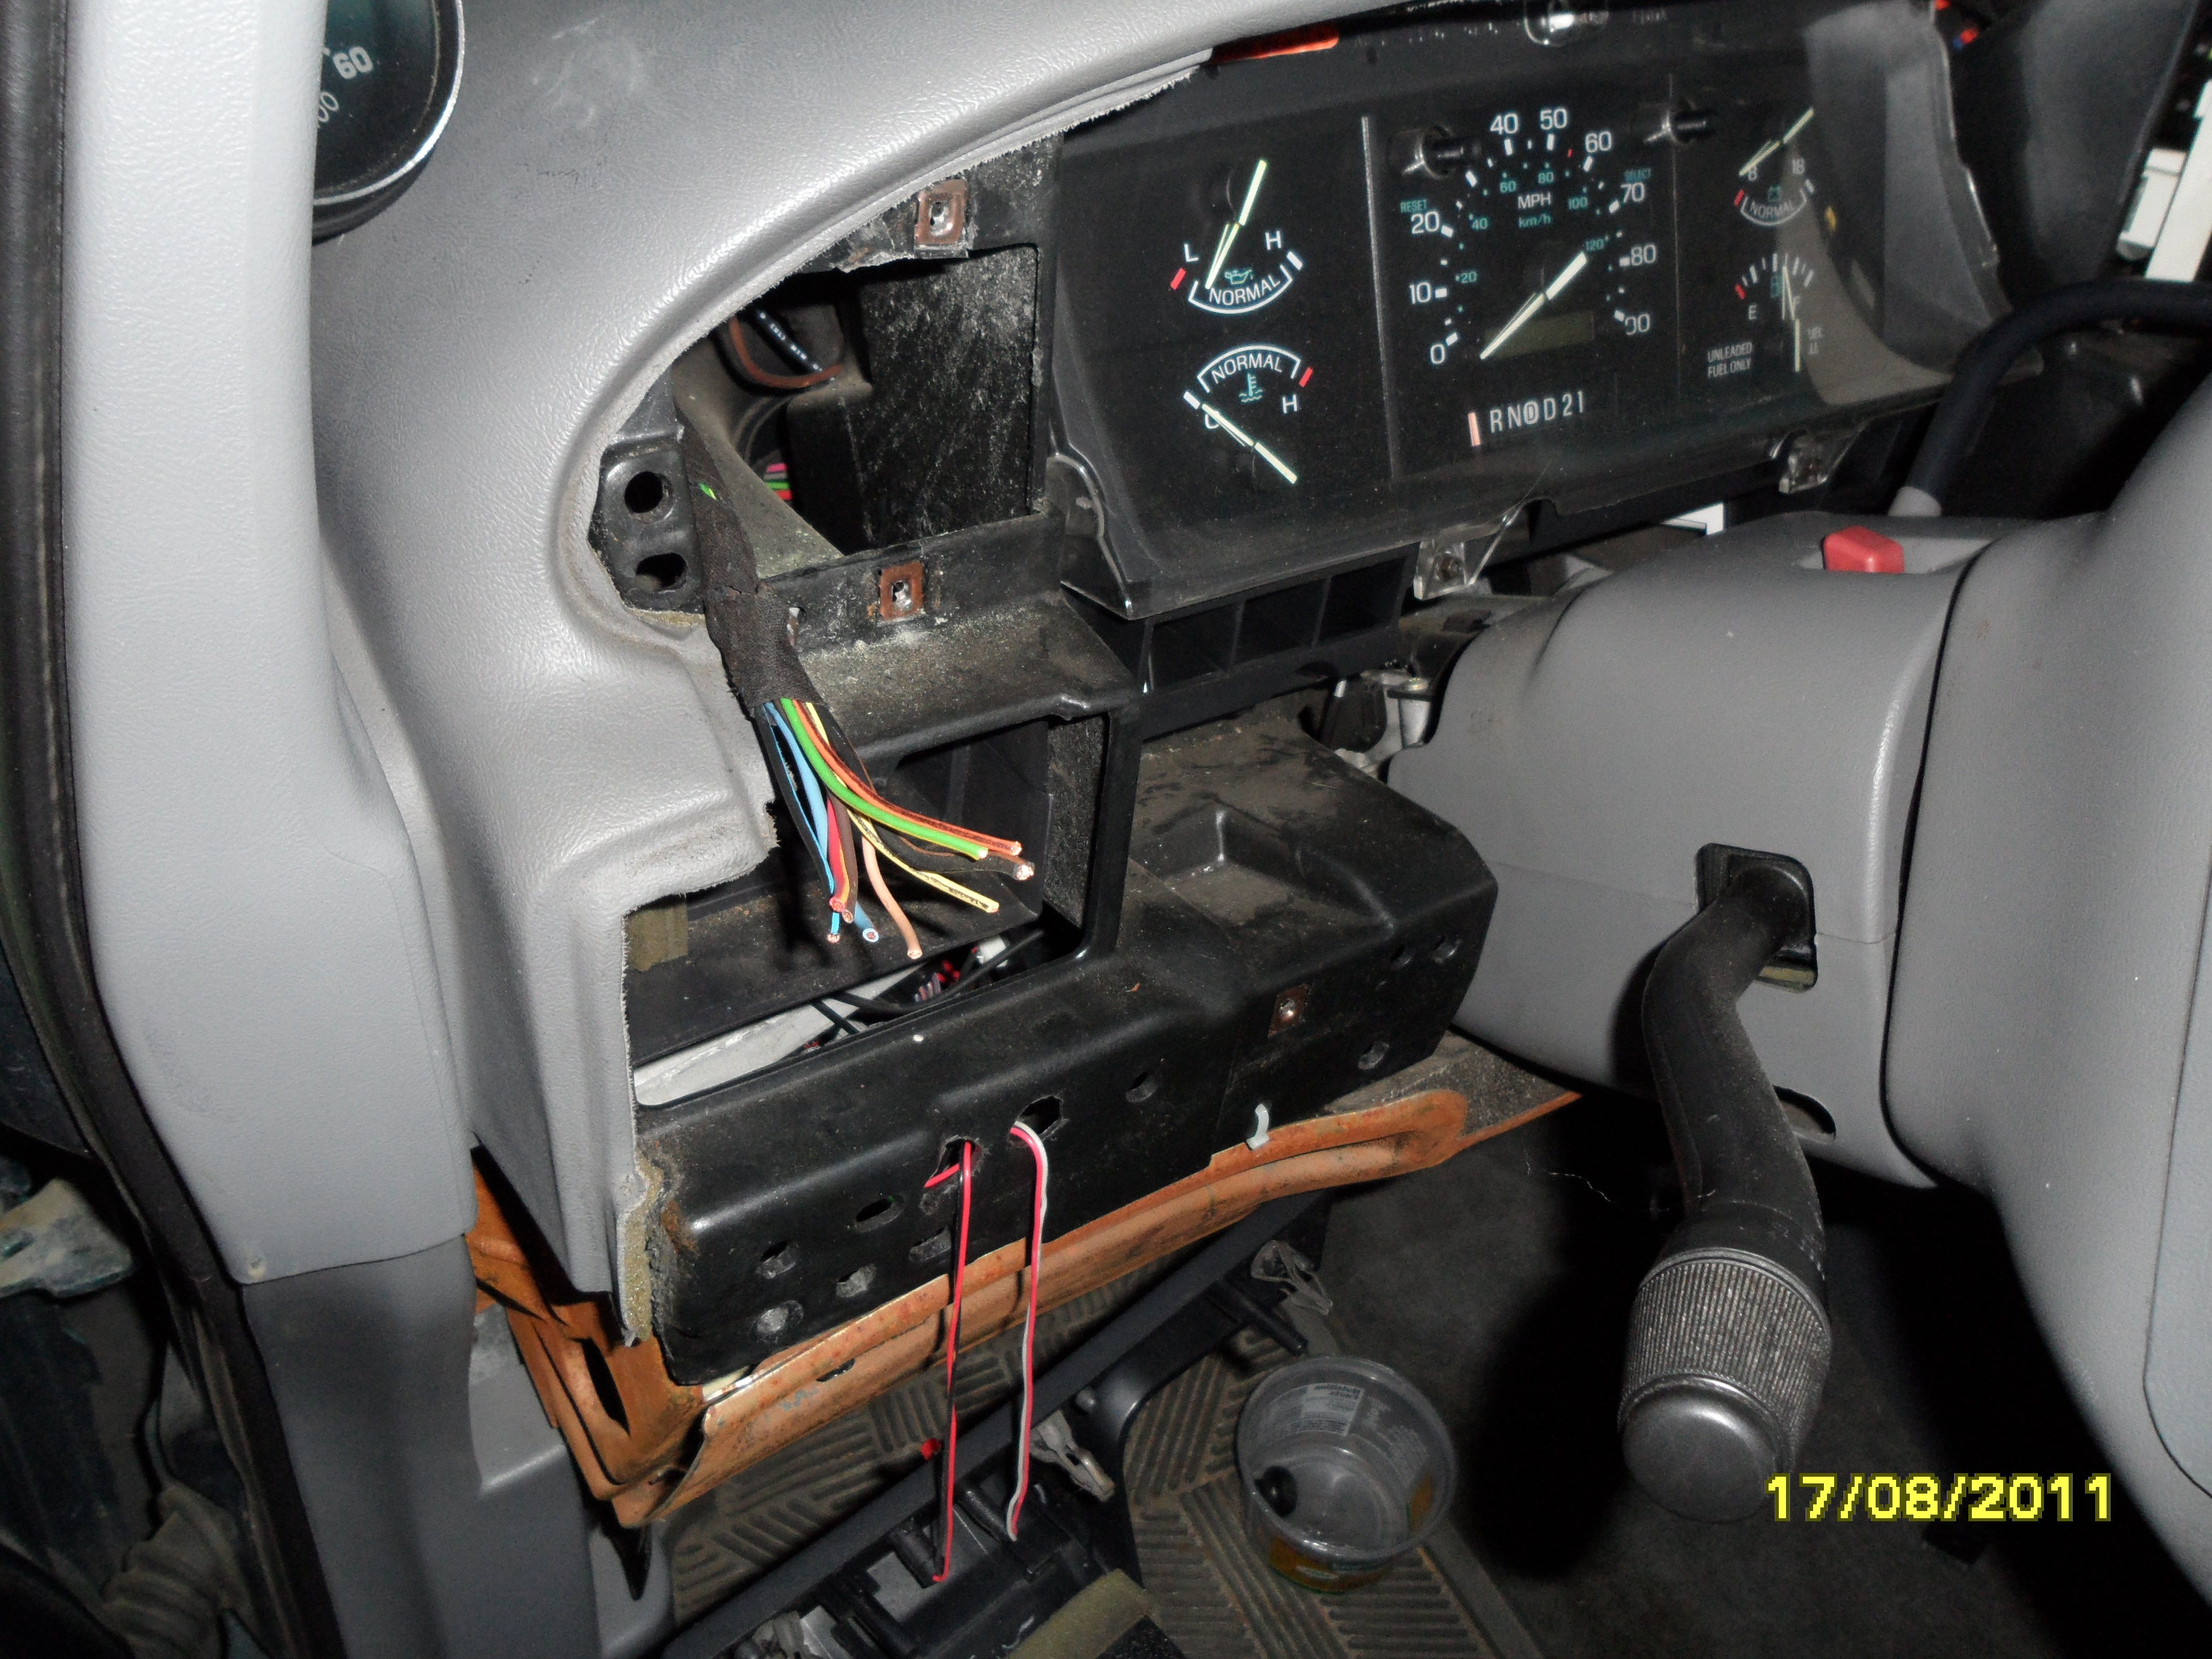 Nissandiesel Forums View Topic Als 1993 Aerostar Xl Green 1987 D21 Fuse Box Image